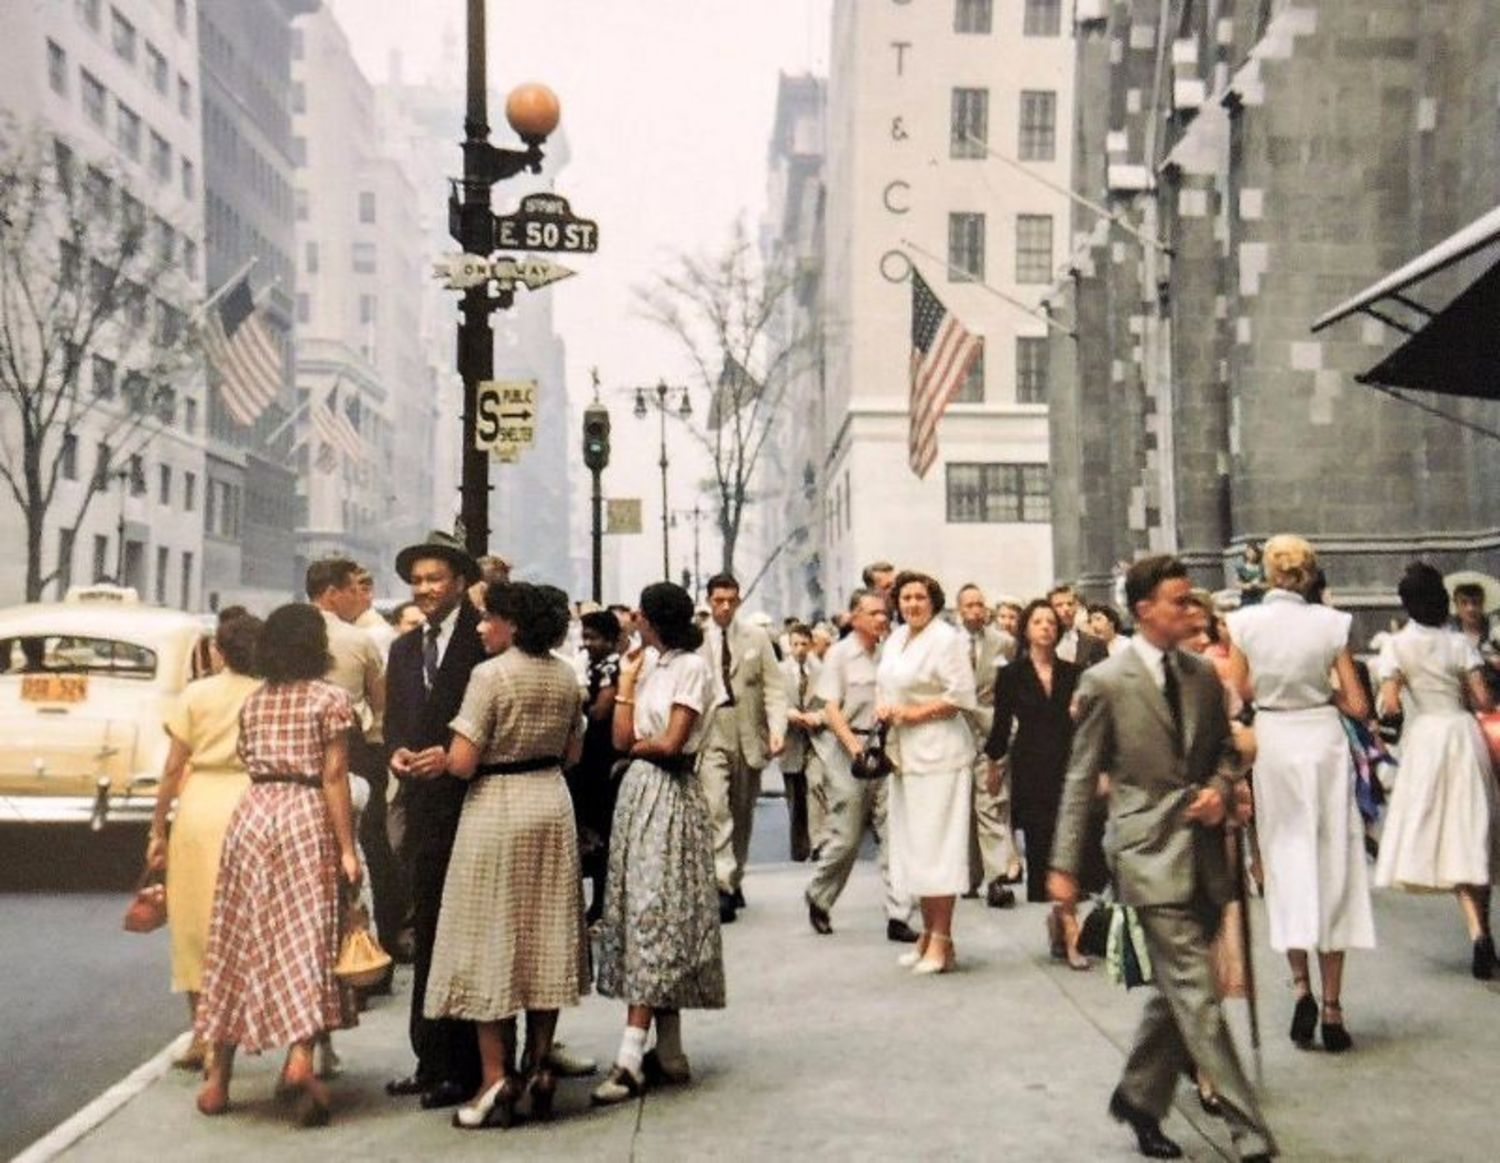 5th Avenue & 50th Street (St. Patrick's Cathedral on the right), 1956